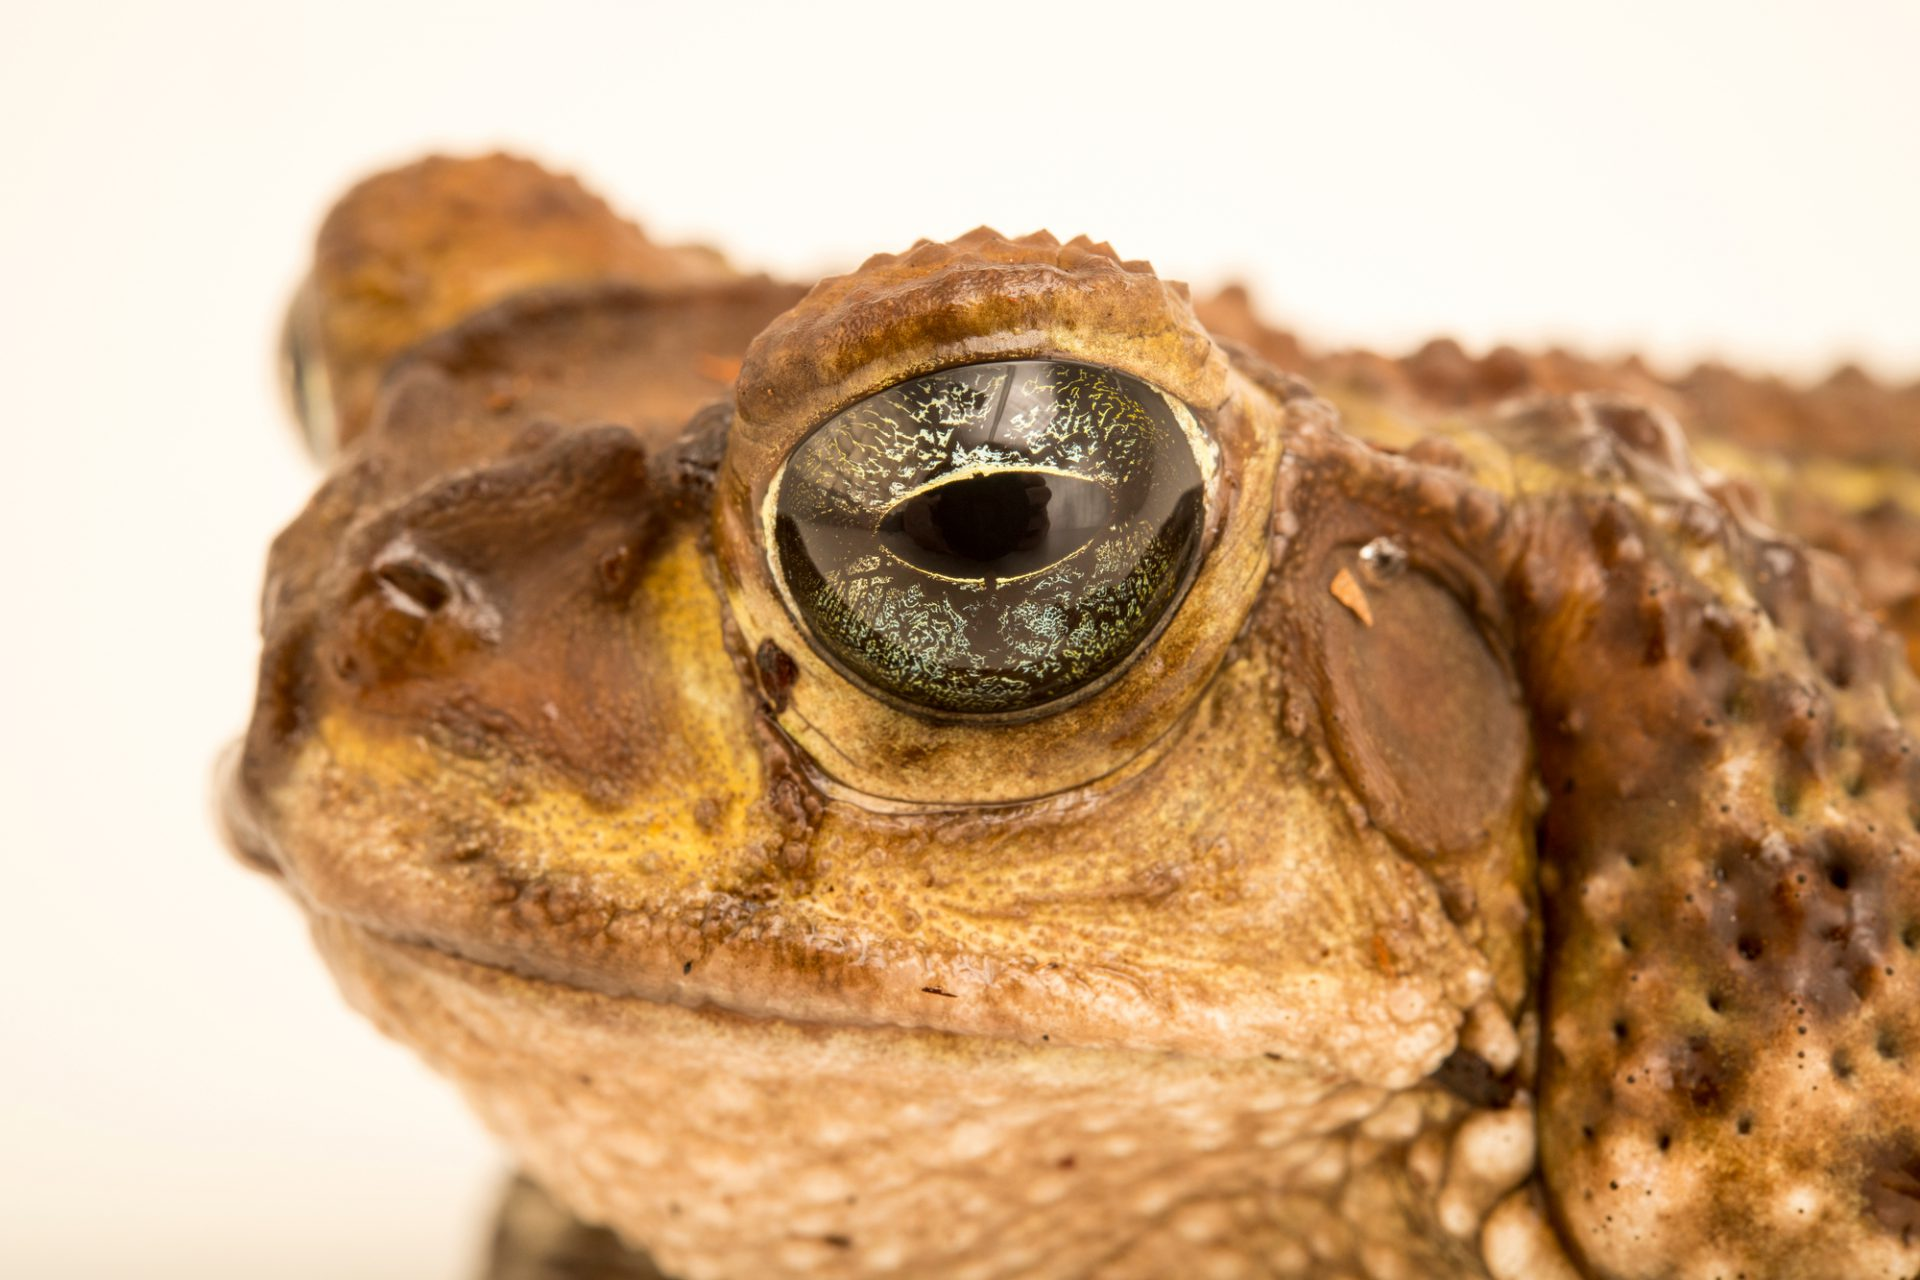 Photo: Cuban crested toad (Peltophryne peltocephala) at the Moscow Zoo.